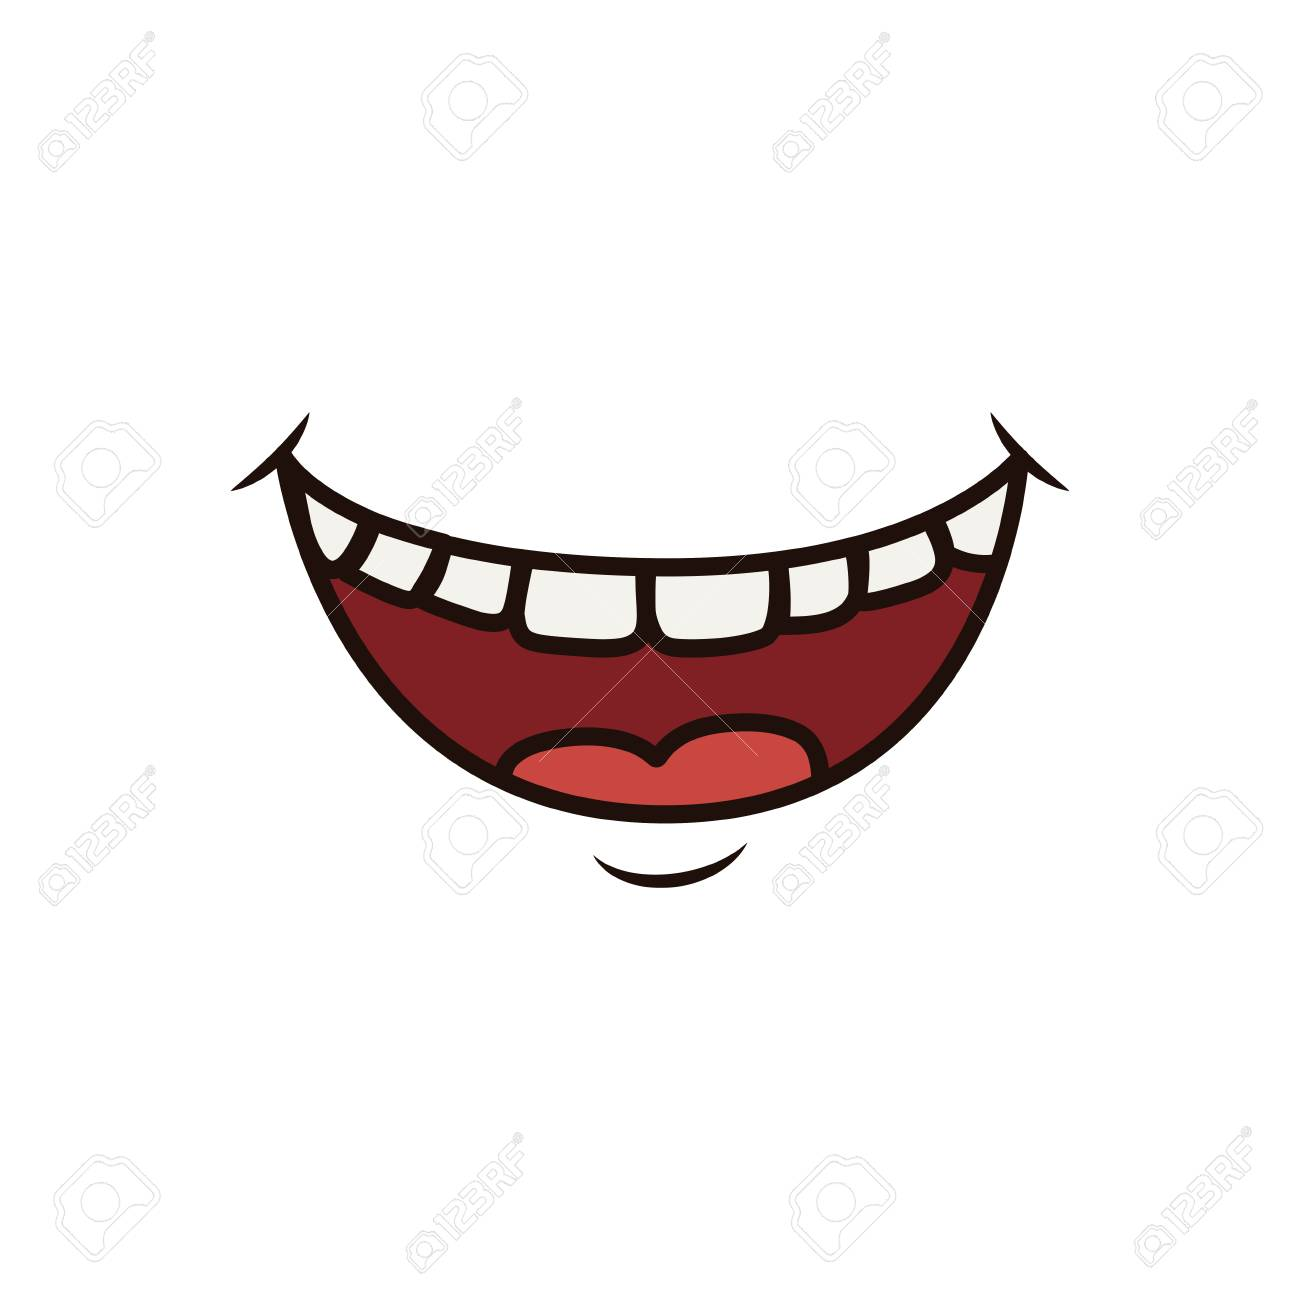 Banque dimages mouth laughing dessin animé icône illustration vectorielle design graphique